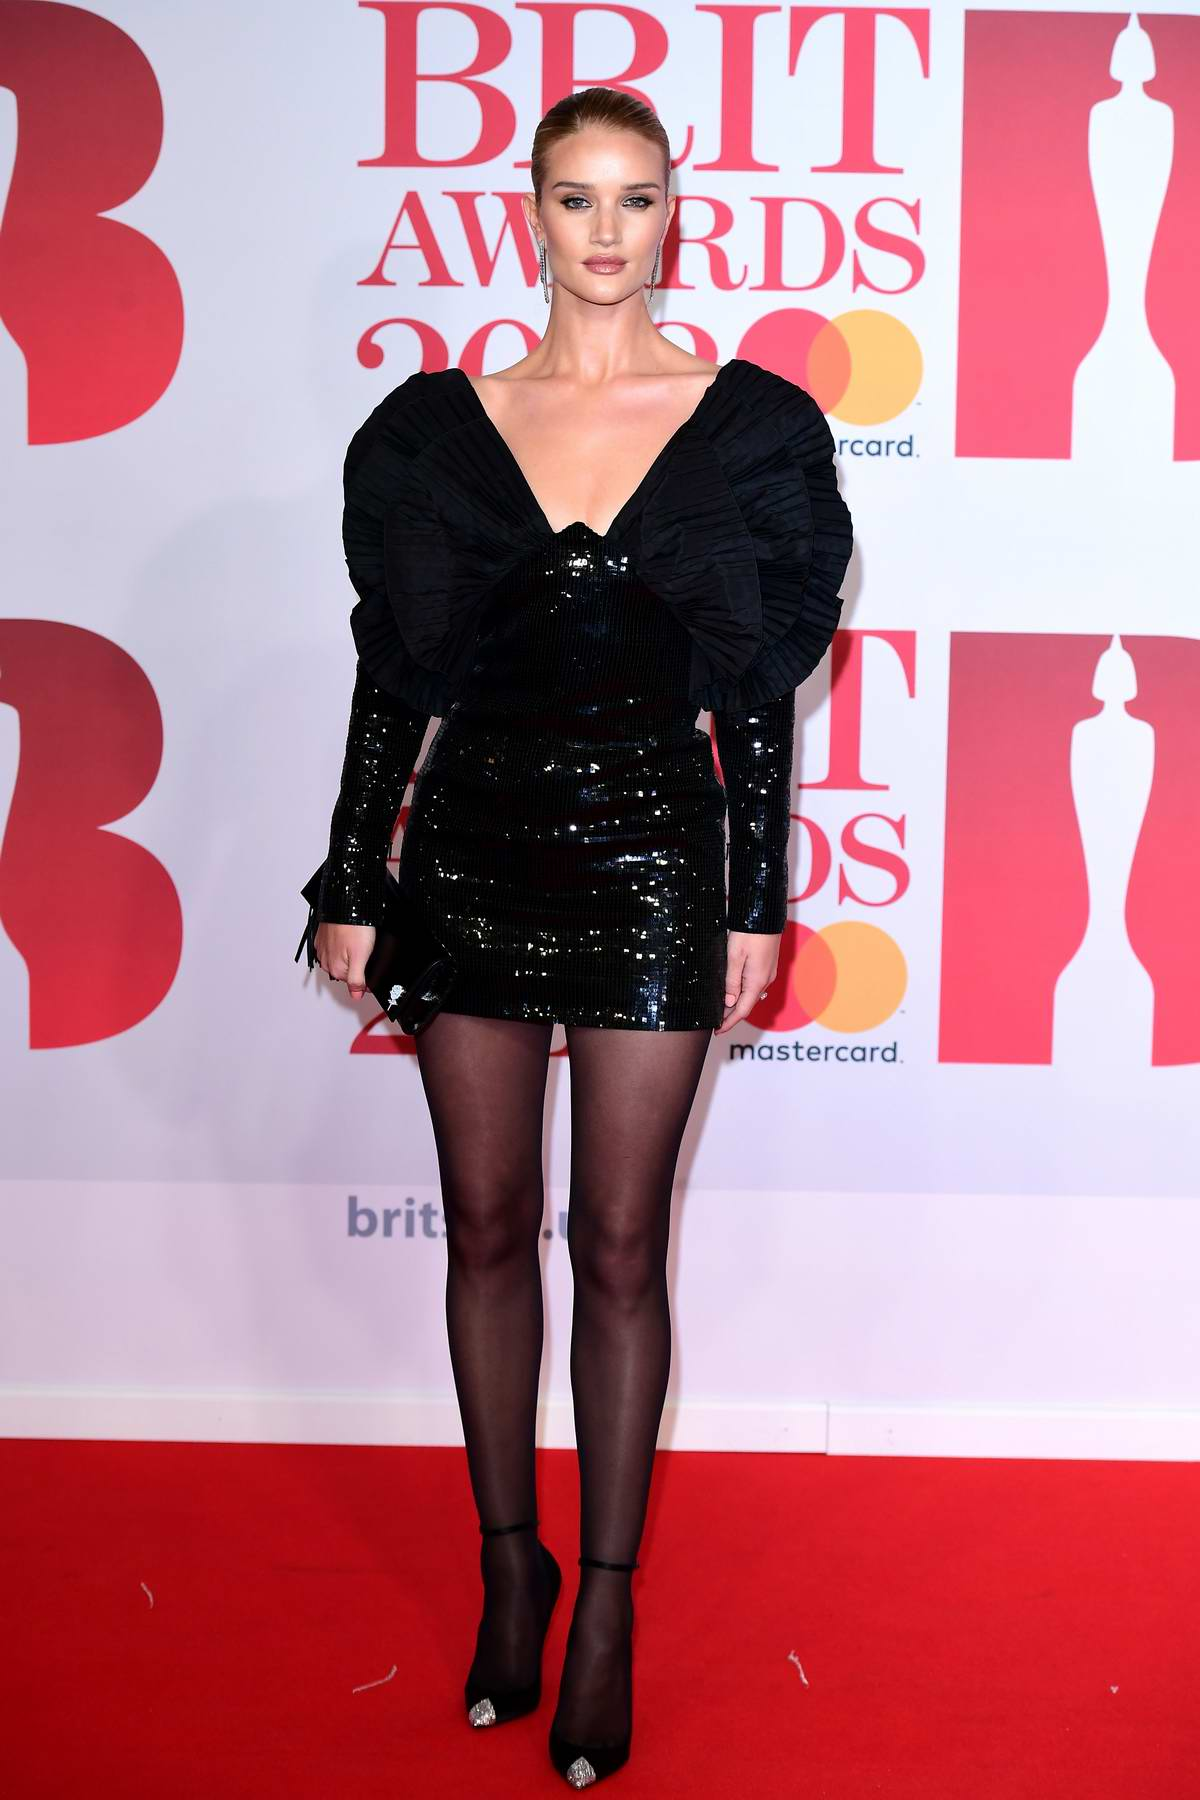 Rosie Huntington-Whiteley attends the 38th Brit Awards, held at the O2 Arena in London